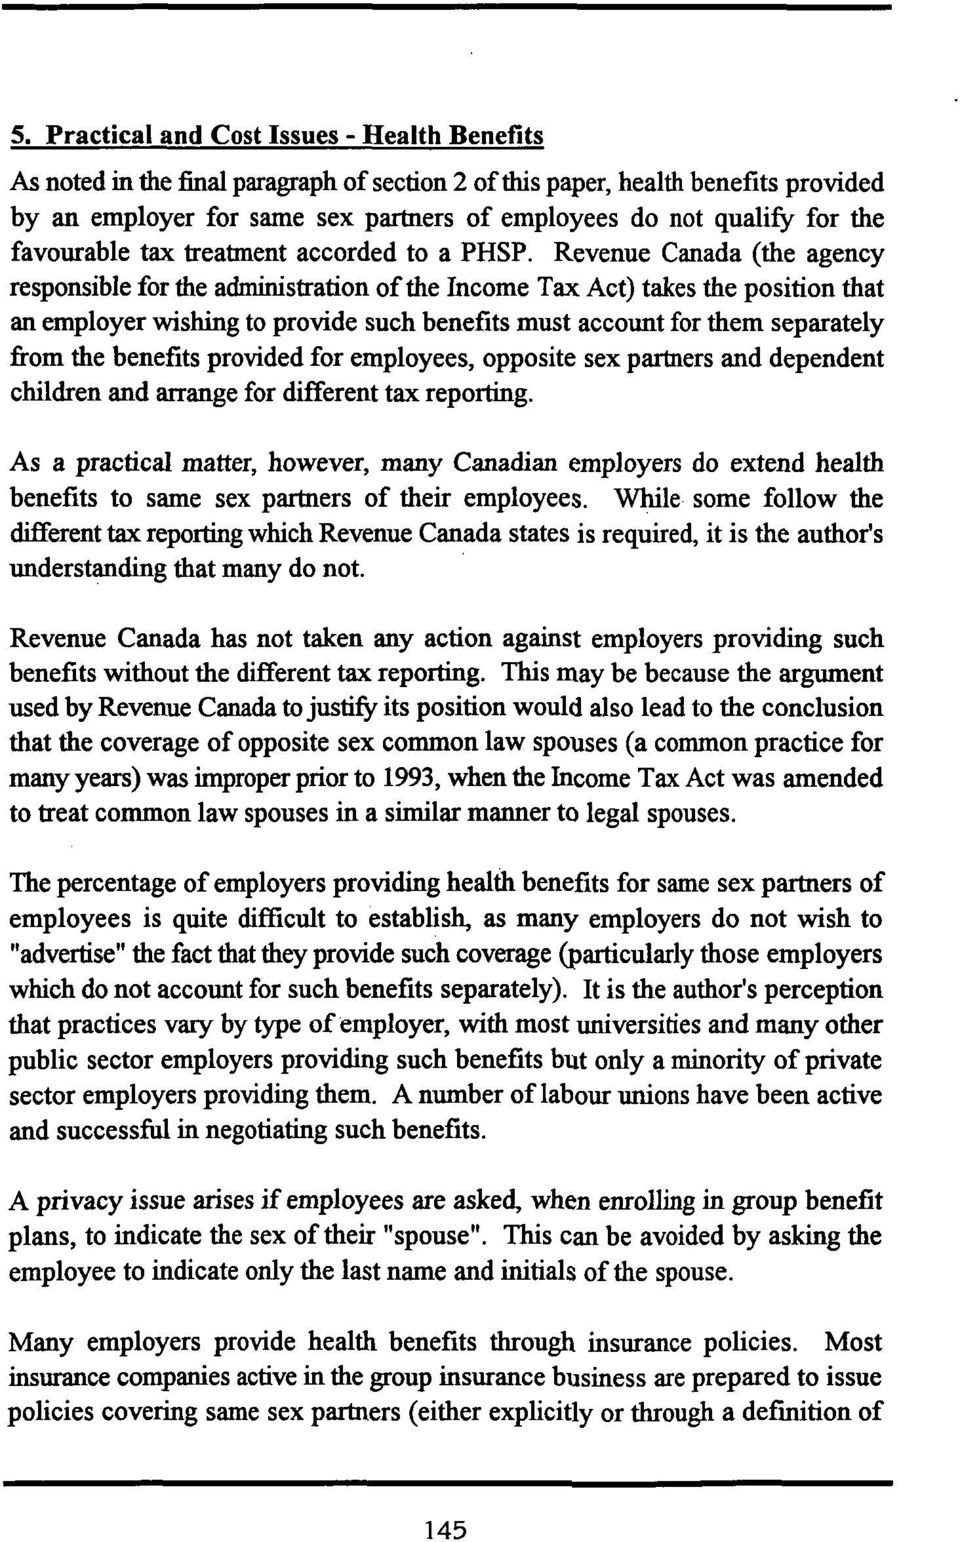 Revenue Canada (the agency responsible for the administration of the Income Tax Act) takes the position that an employer wishing to provide such benefits must account for them separately fiom the